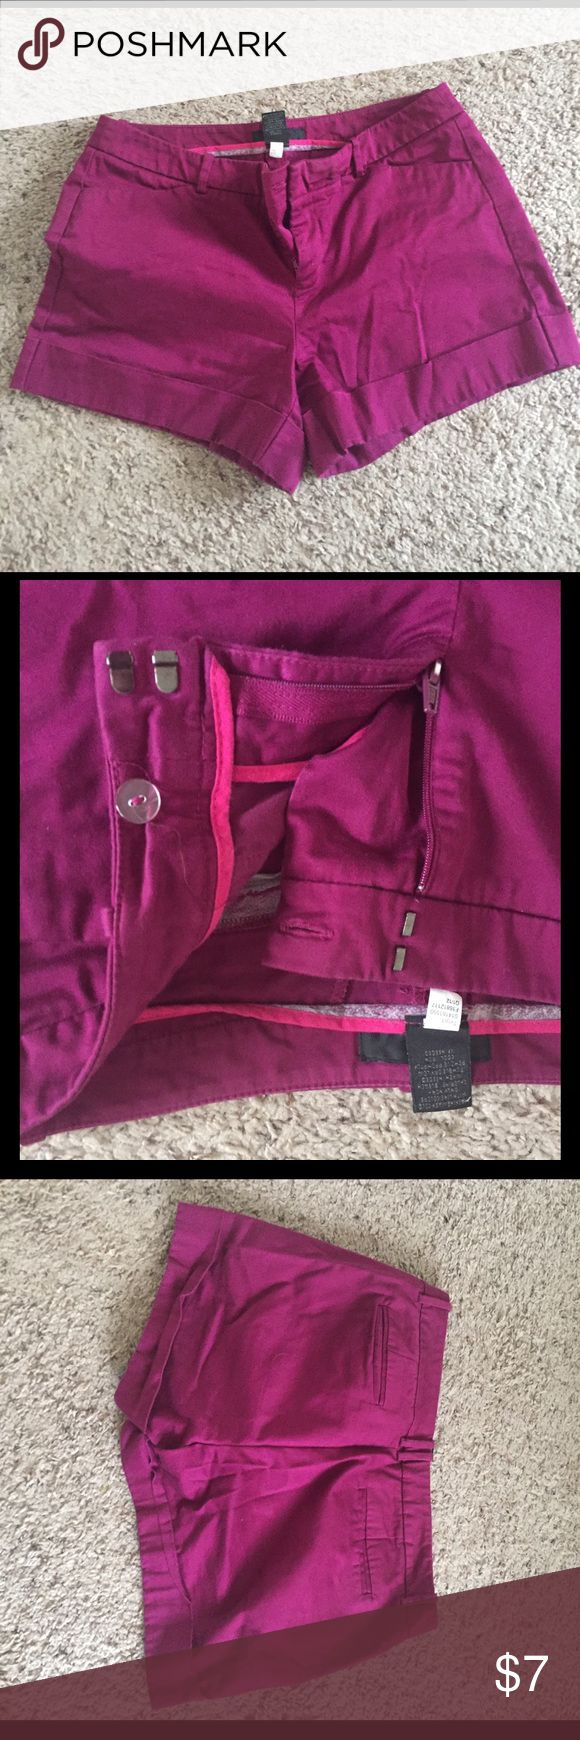 Fuscia Stretch Shorts from Target Fuscia Mossimo stretch shorts from Target. Size: 10, 98% cotton, 2% spandex. Worn but still in decent condition. Mossimo Supply Co Shorts Cargos